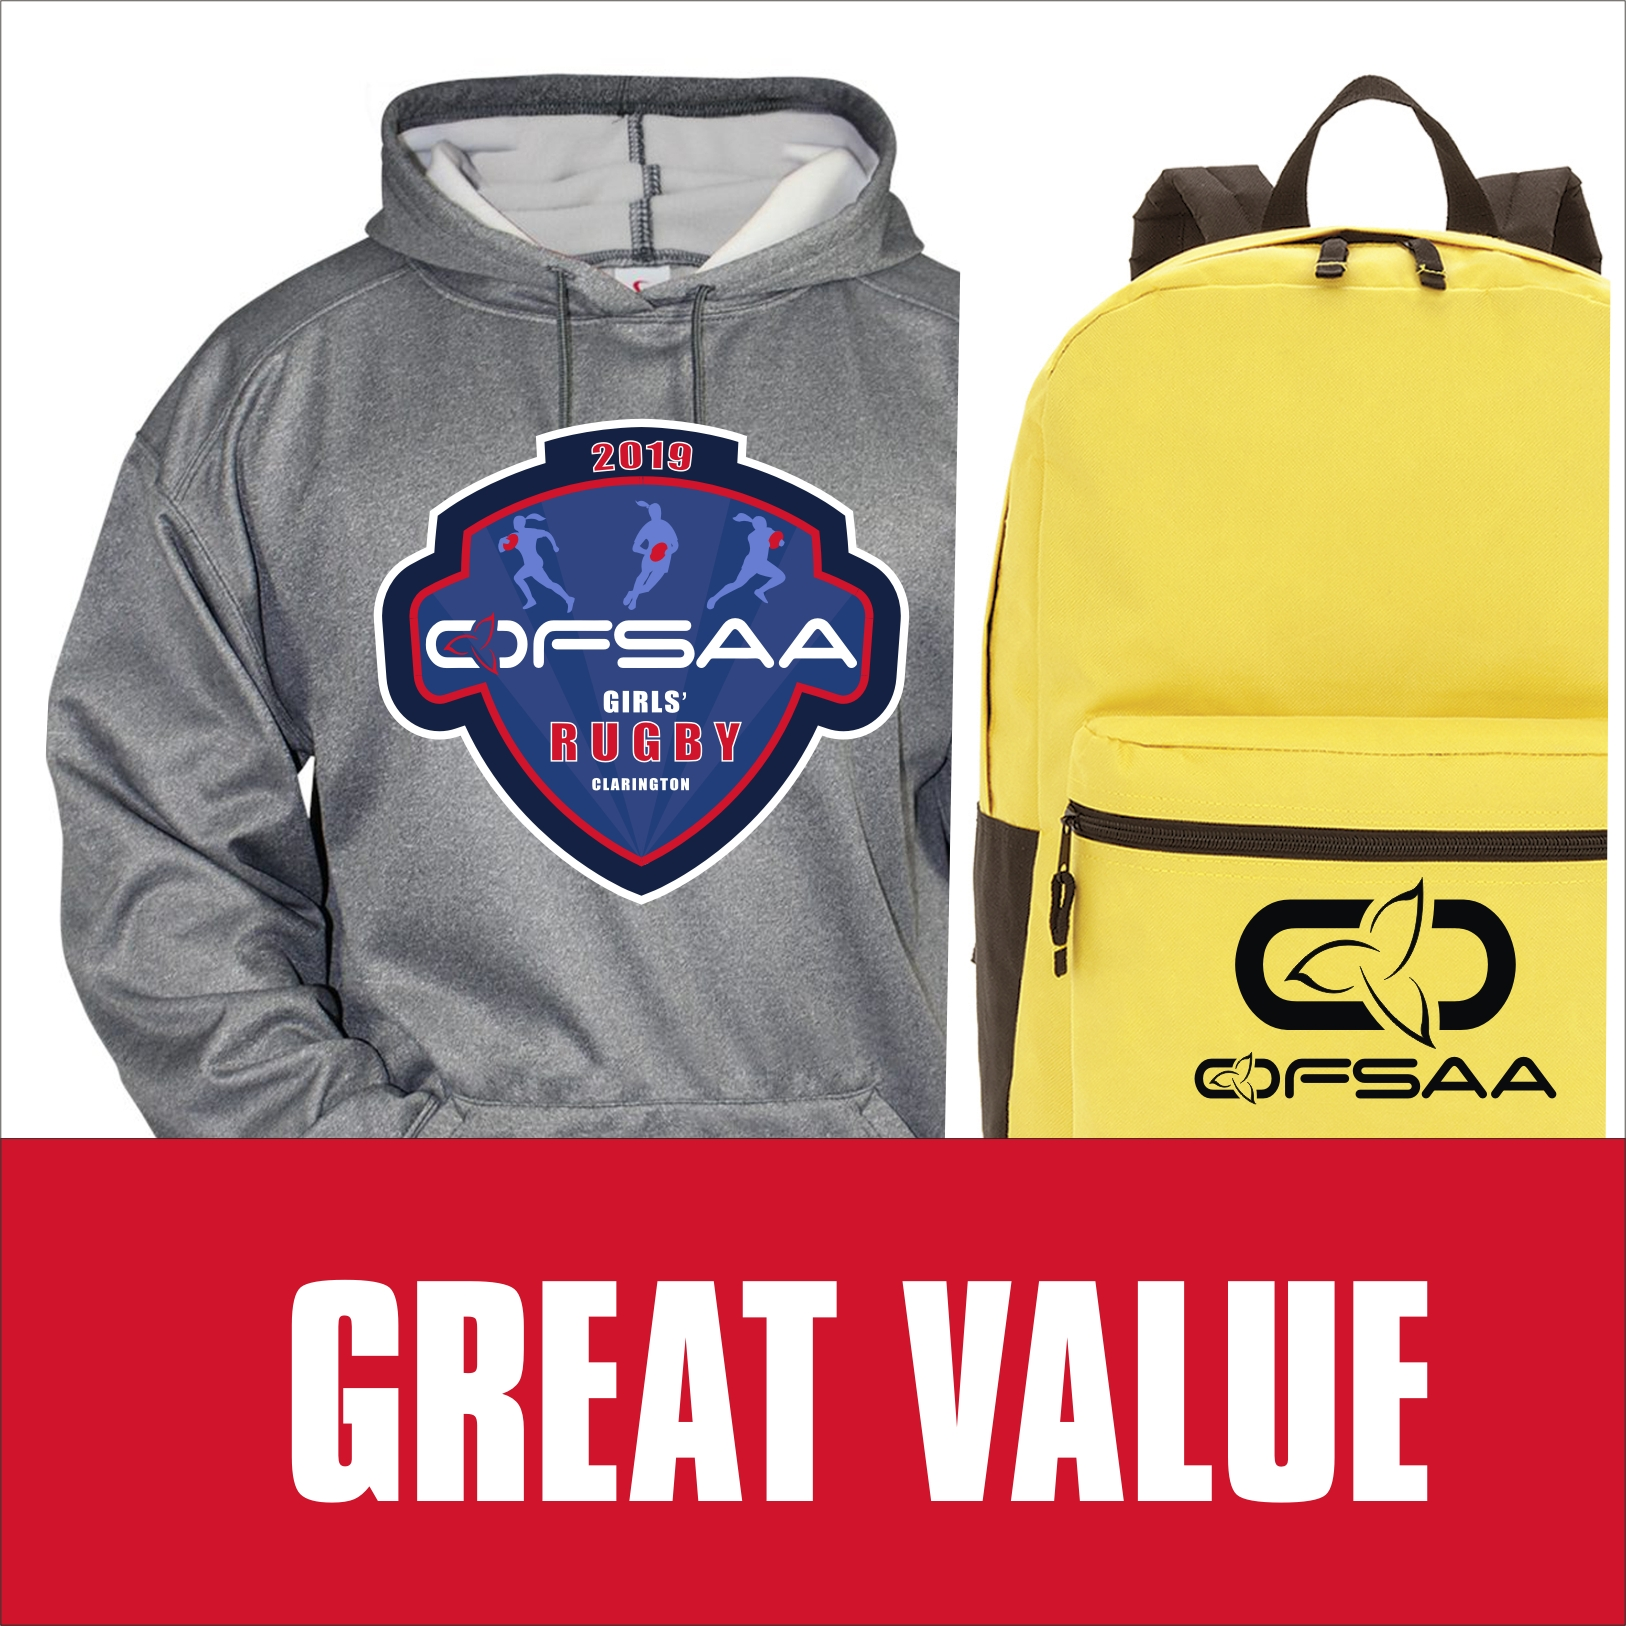 2019 Girls Rugby bag bundle.jpg